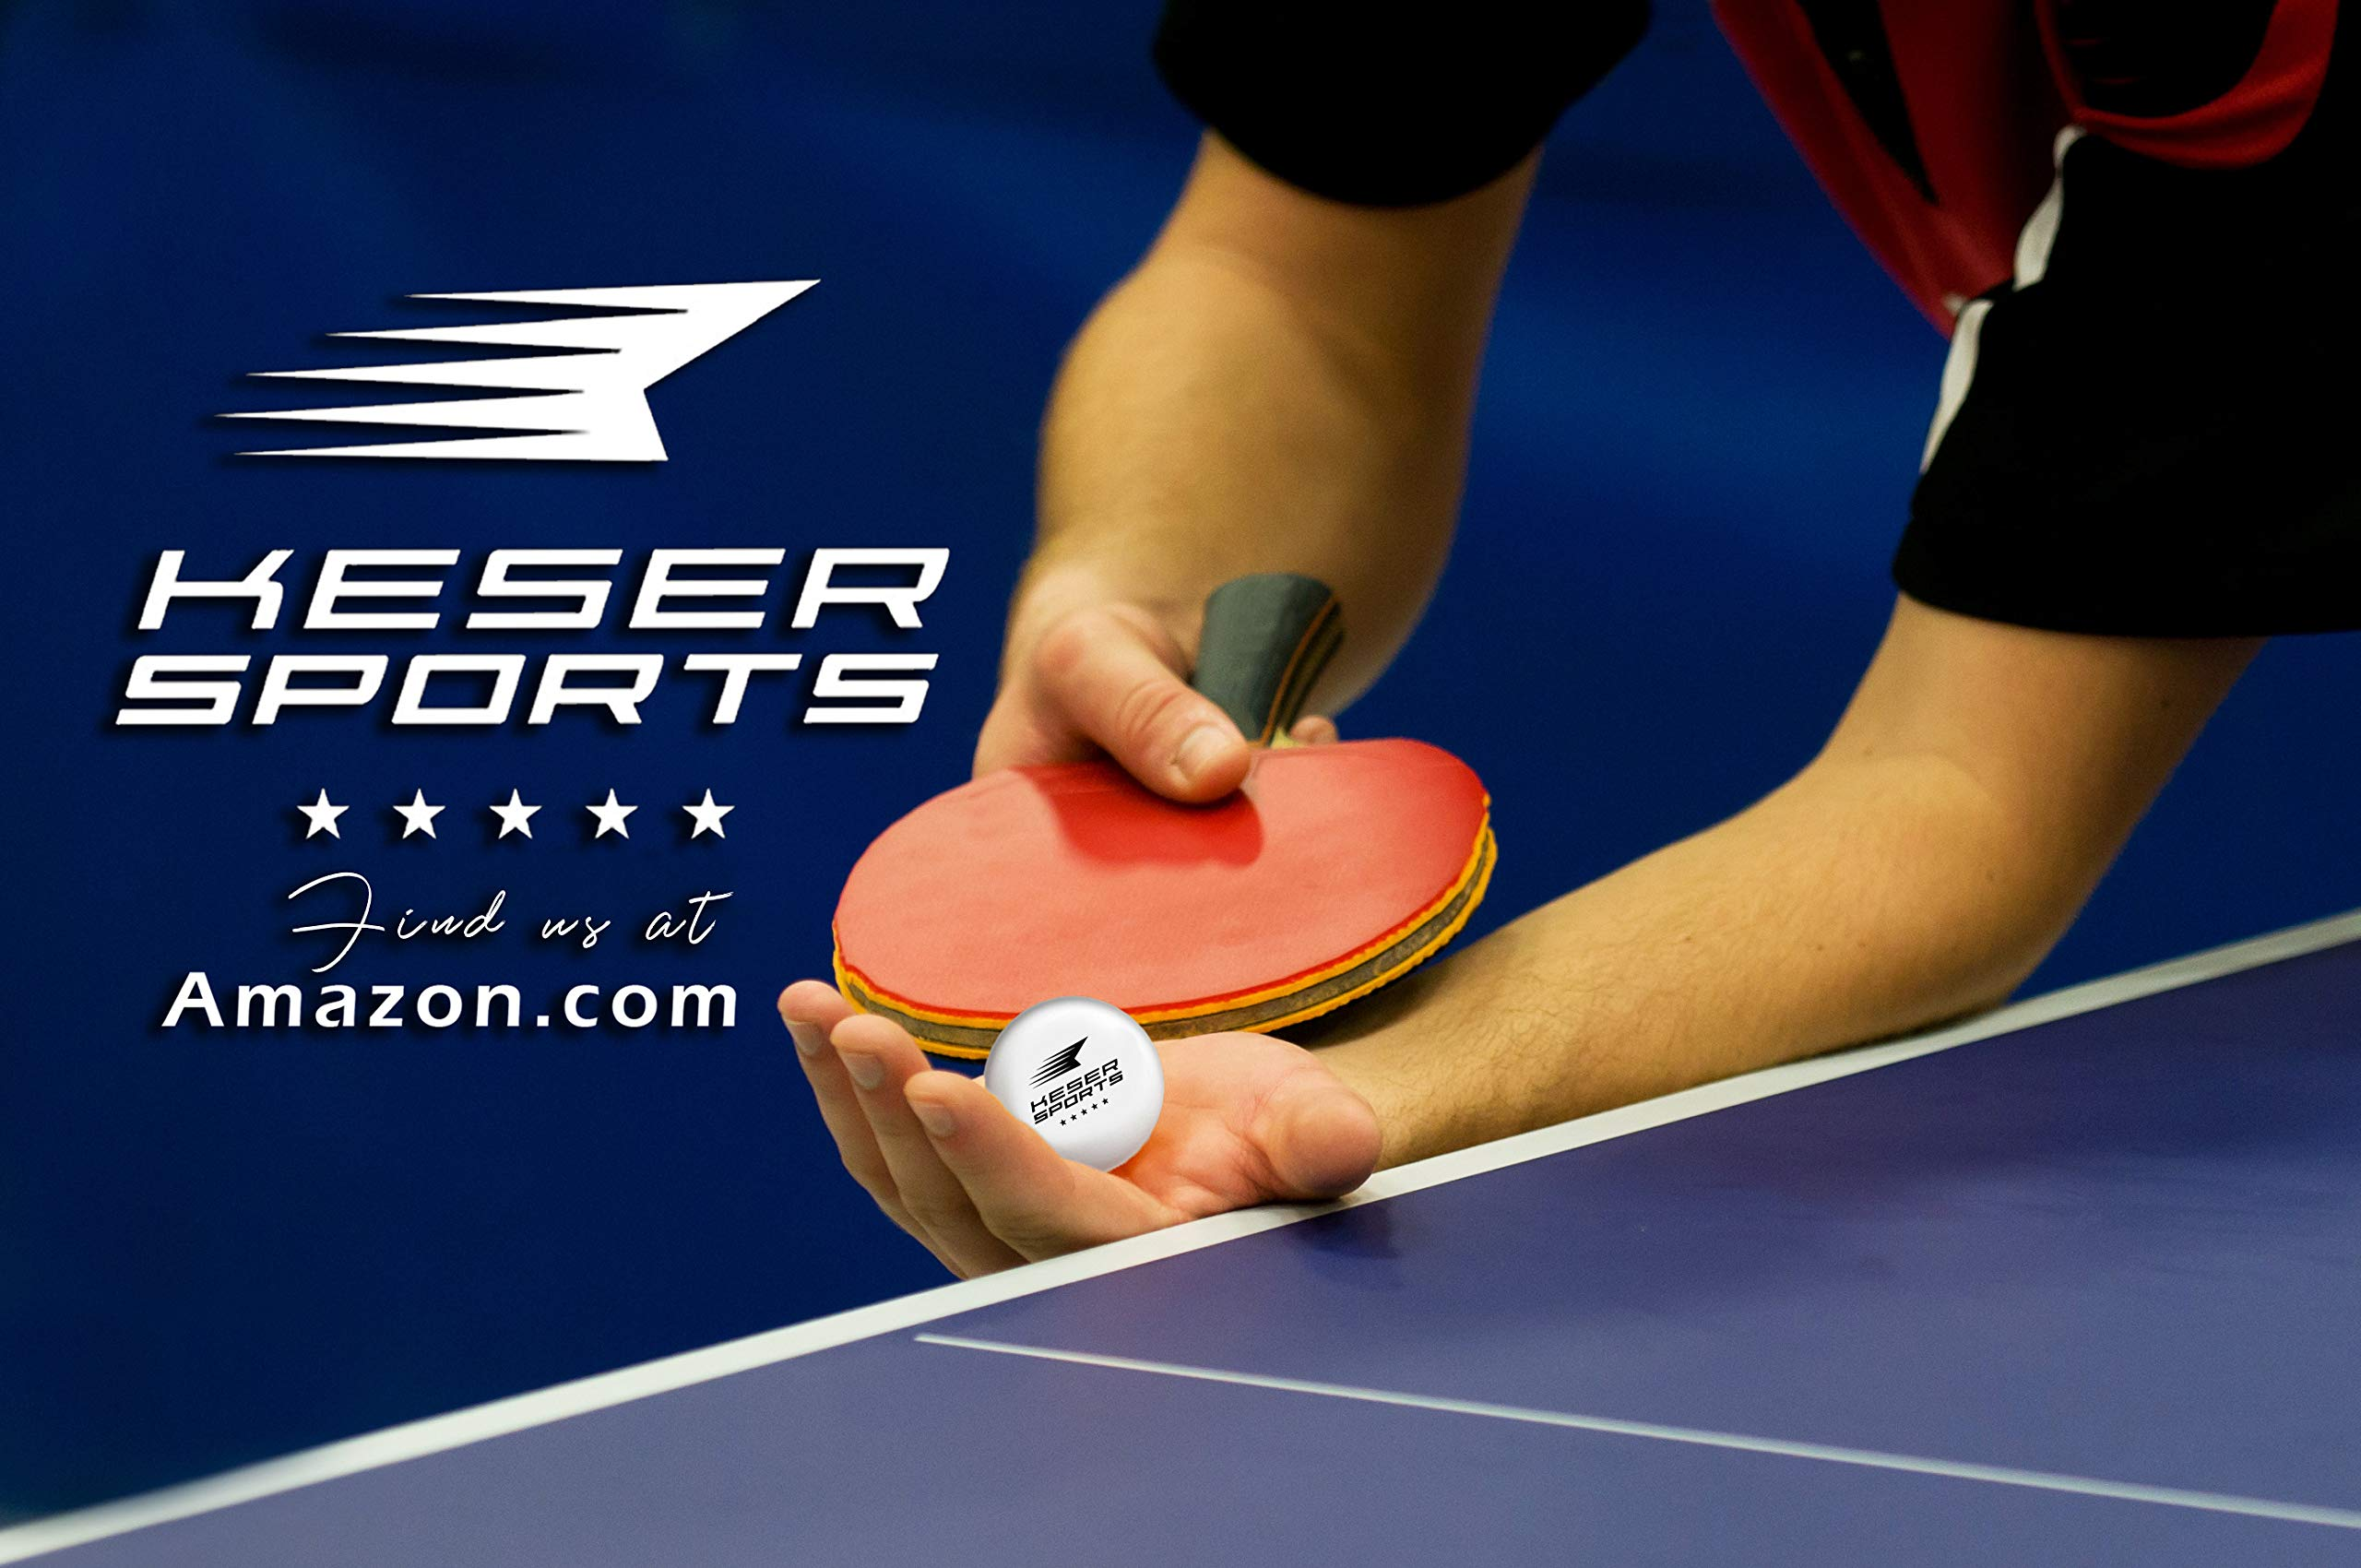 Keser Sports 5-Star Ping Pong Paddle Set, 4-Player Racket Set Bundle, 8 Professional ABS Balls, Portable Storage Bag, Full Table Tennis Set, Advanced Spin, Speed & Control, Play Outdoors/Indoors by Keser Sports (Image #9)